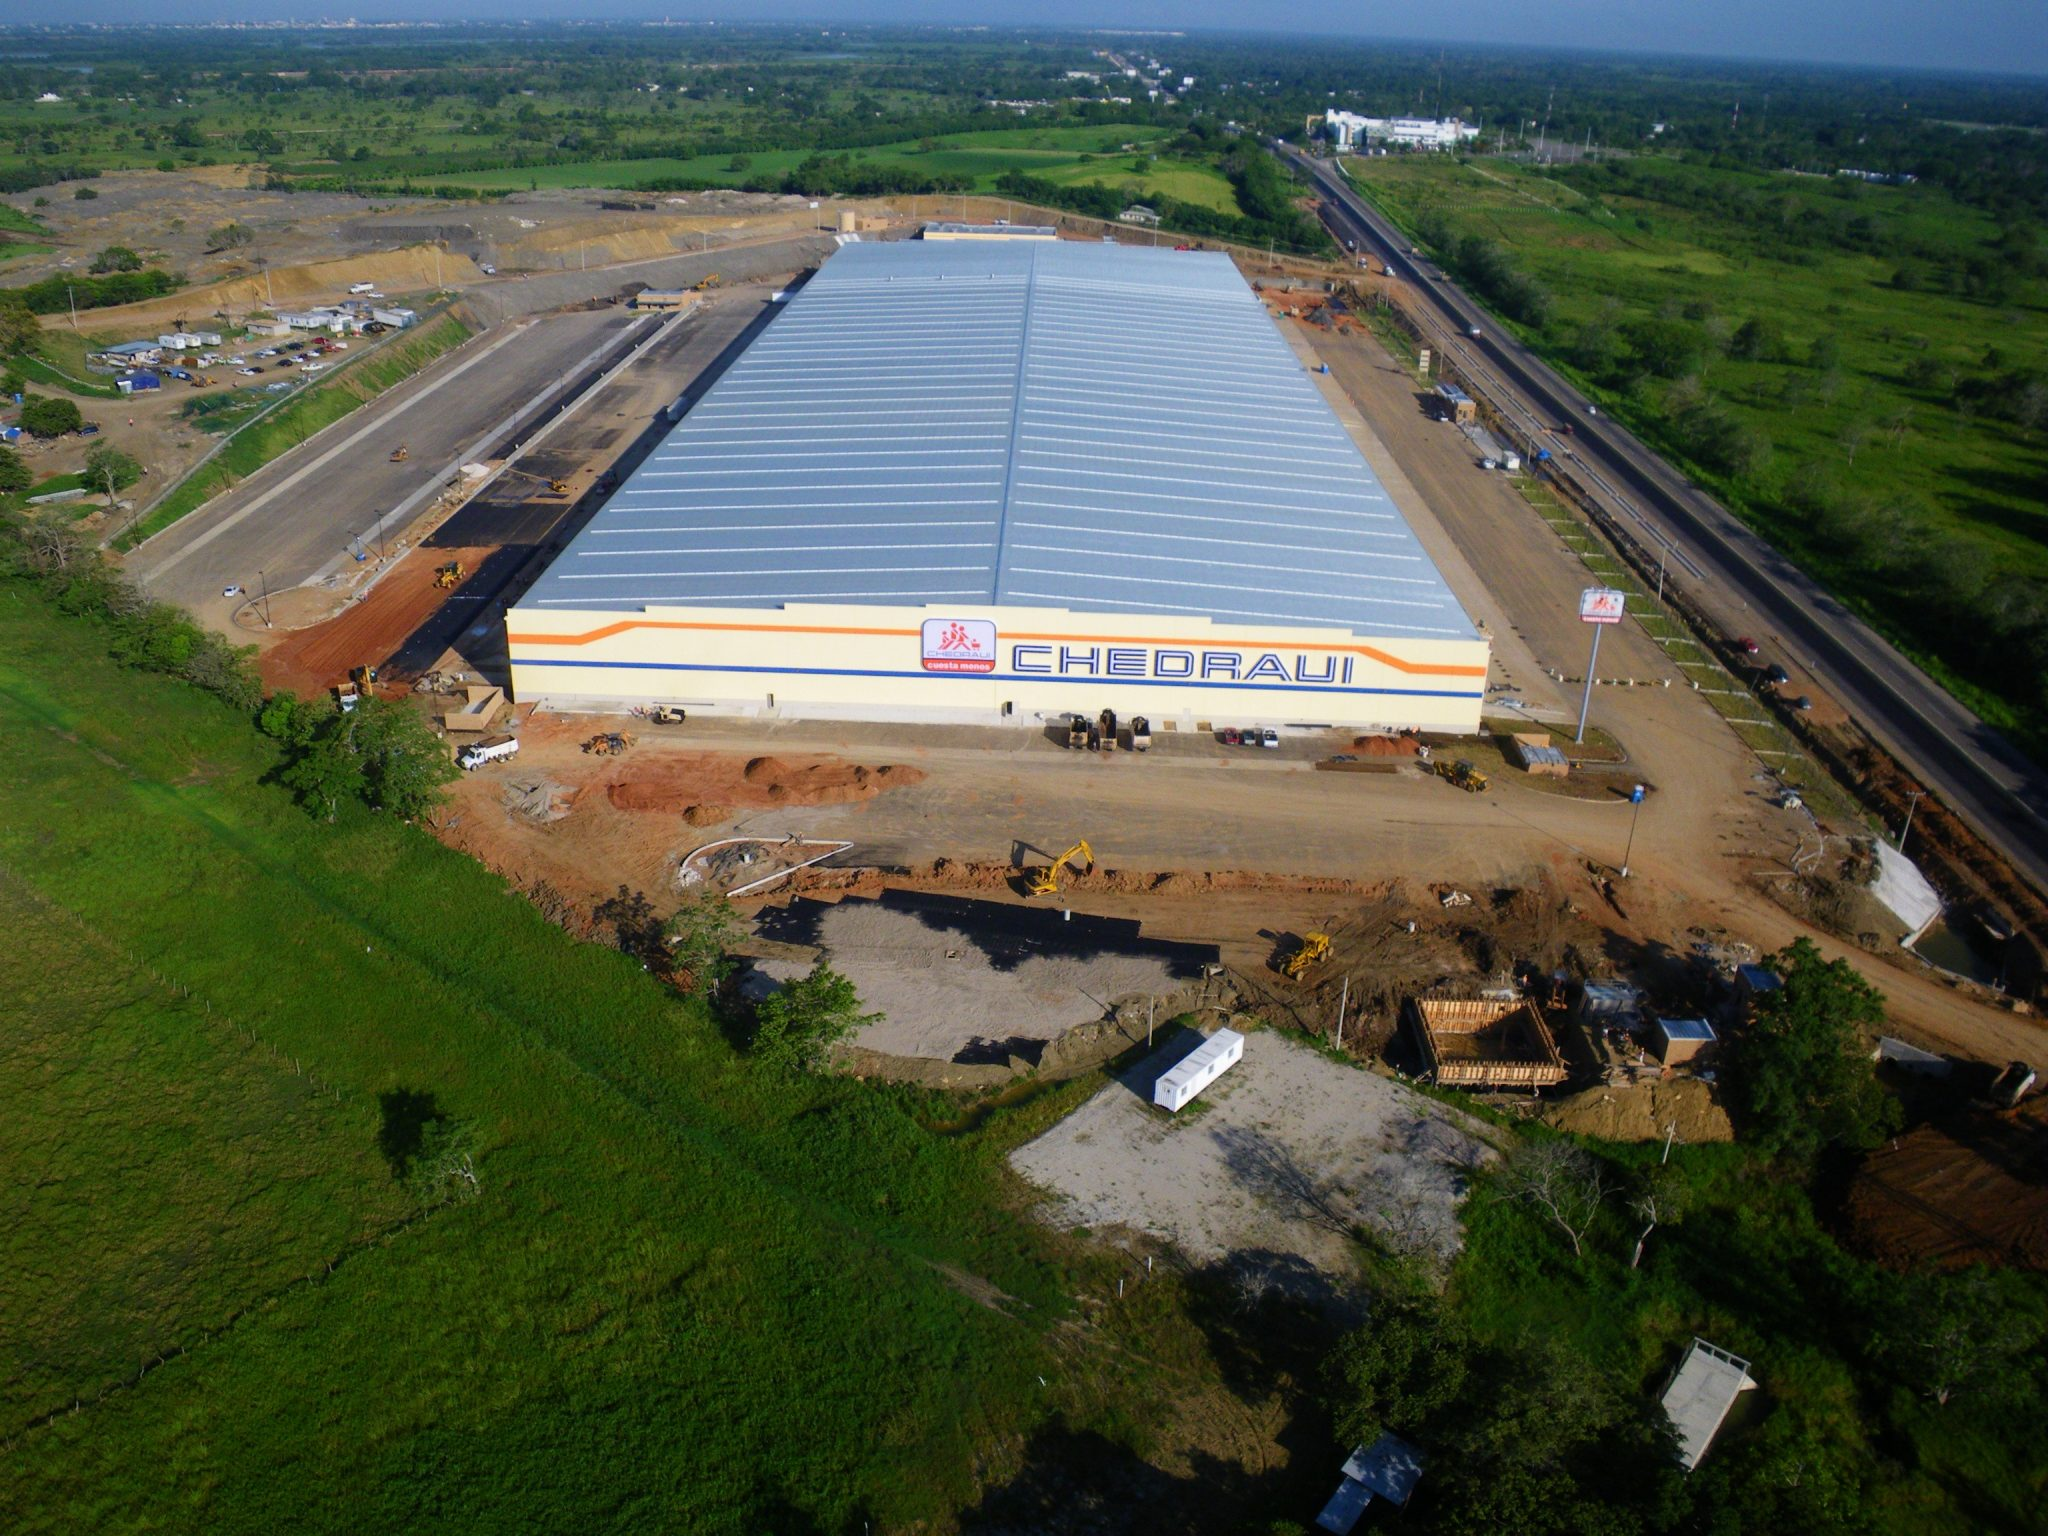 Aerial shot of Chedraui VH Infraestructure in Villahermosa, Tabasco